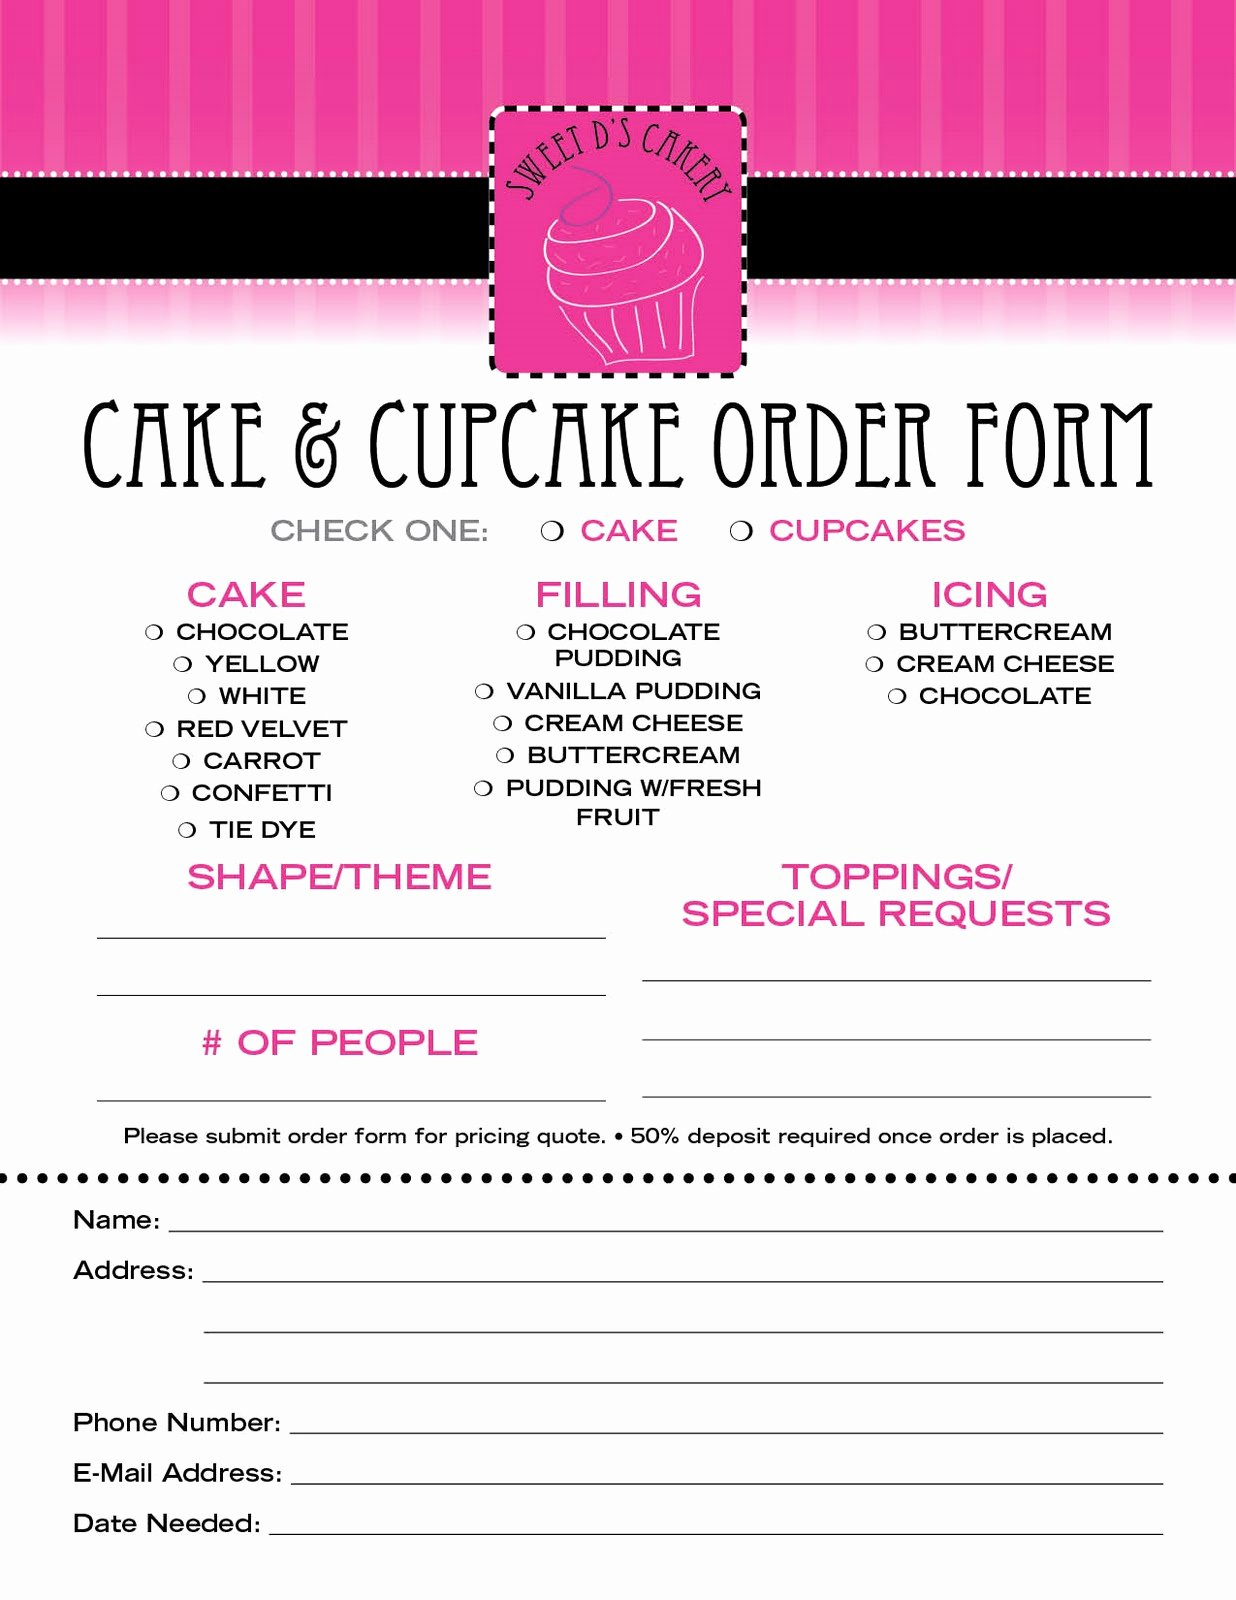 Bakery order form Template Free Inspirational Sweet D S Cakery Download Our order form Here